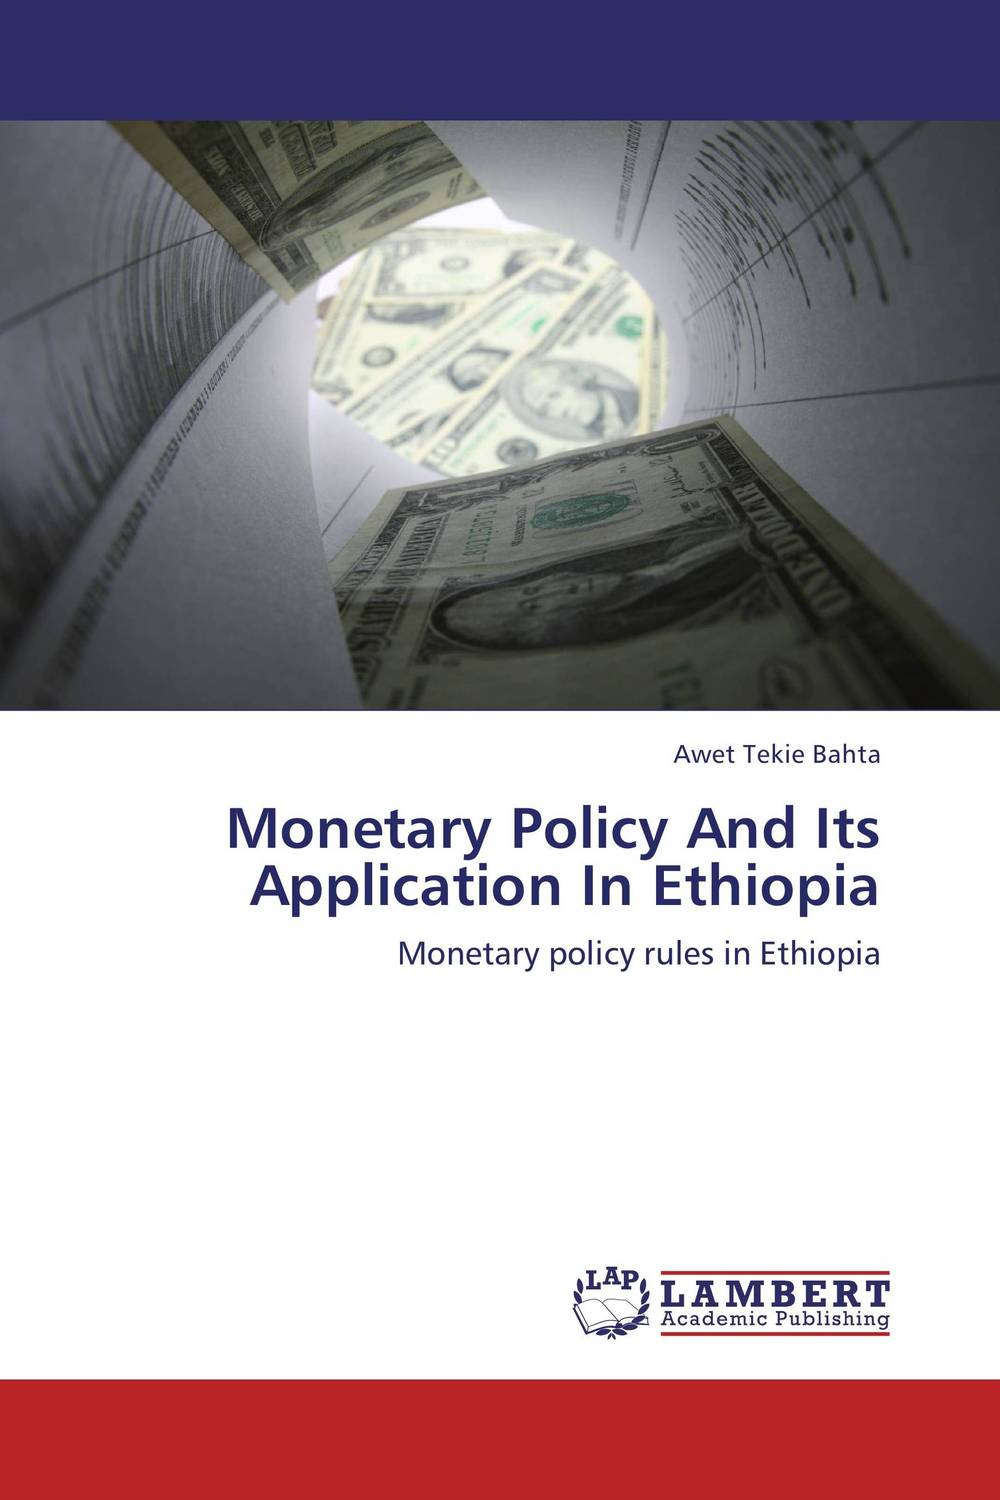 Monetary Policy And Its Application In Ethiopia аскорил таблетки 20 шт